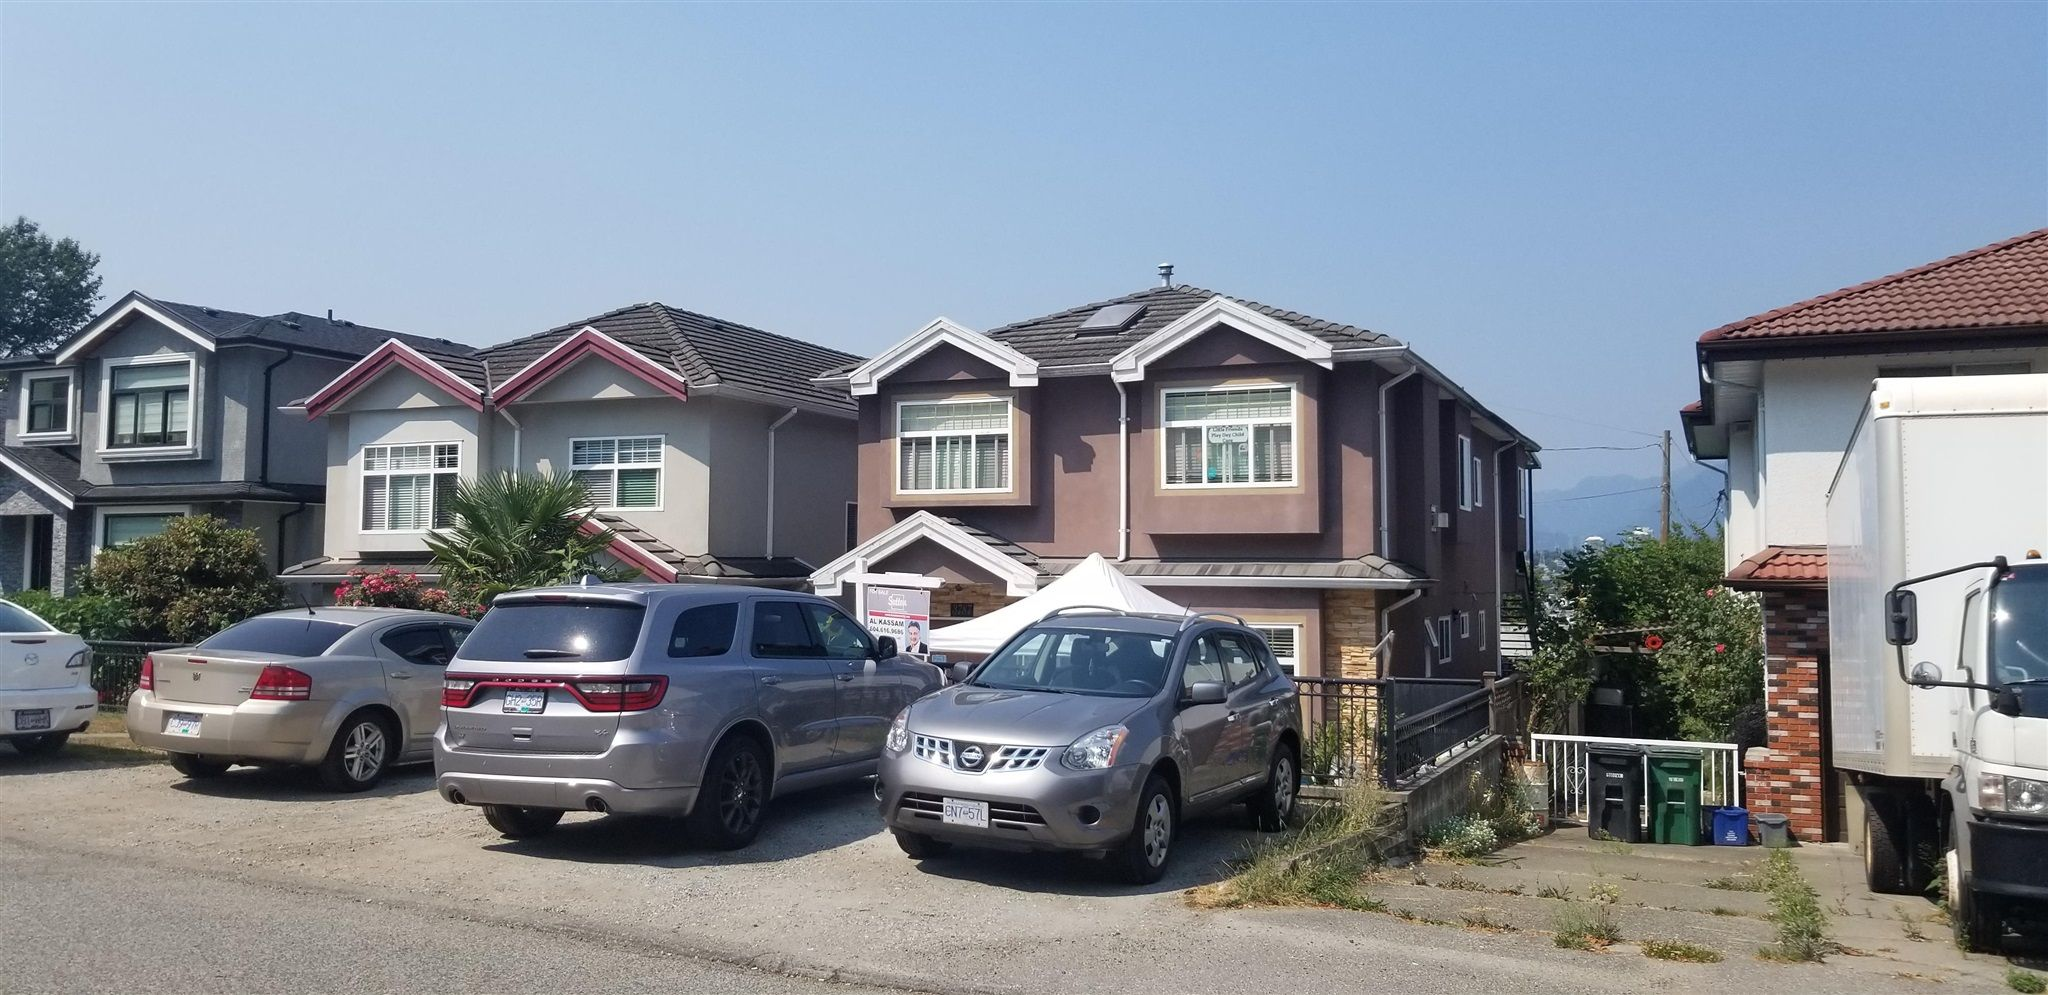 Photo 4: Photos: 3787 MANOR Street in Burnaby: Central BN House for sale (Burnaby North)  : MLS®# R2590116